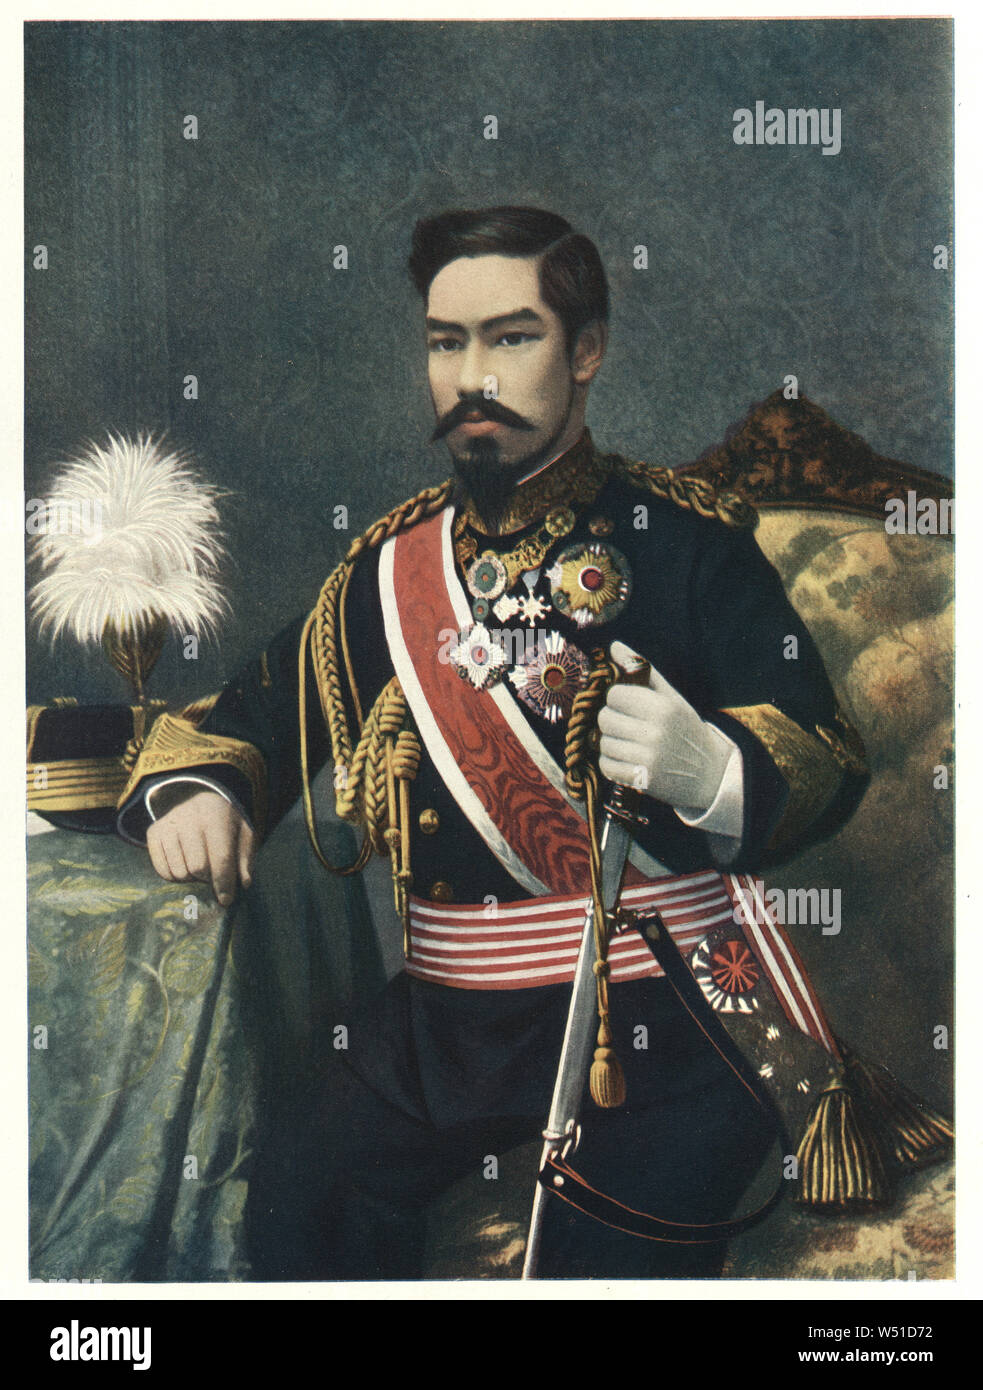 Emperor Meiji, or Meiji the Great, was the 122nd Emperor of Japan reigning from 1867 until 1912. He presided over the Meiji period, a time of rapid change that witnessed the Empire of Japan rapidly transform from an isolationist feudal state to an industrialized world power. Stock Photo